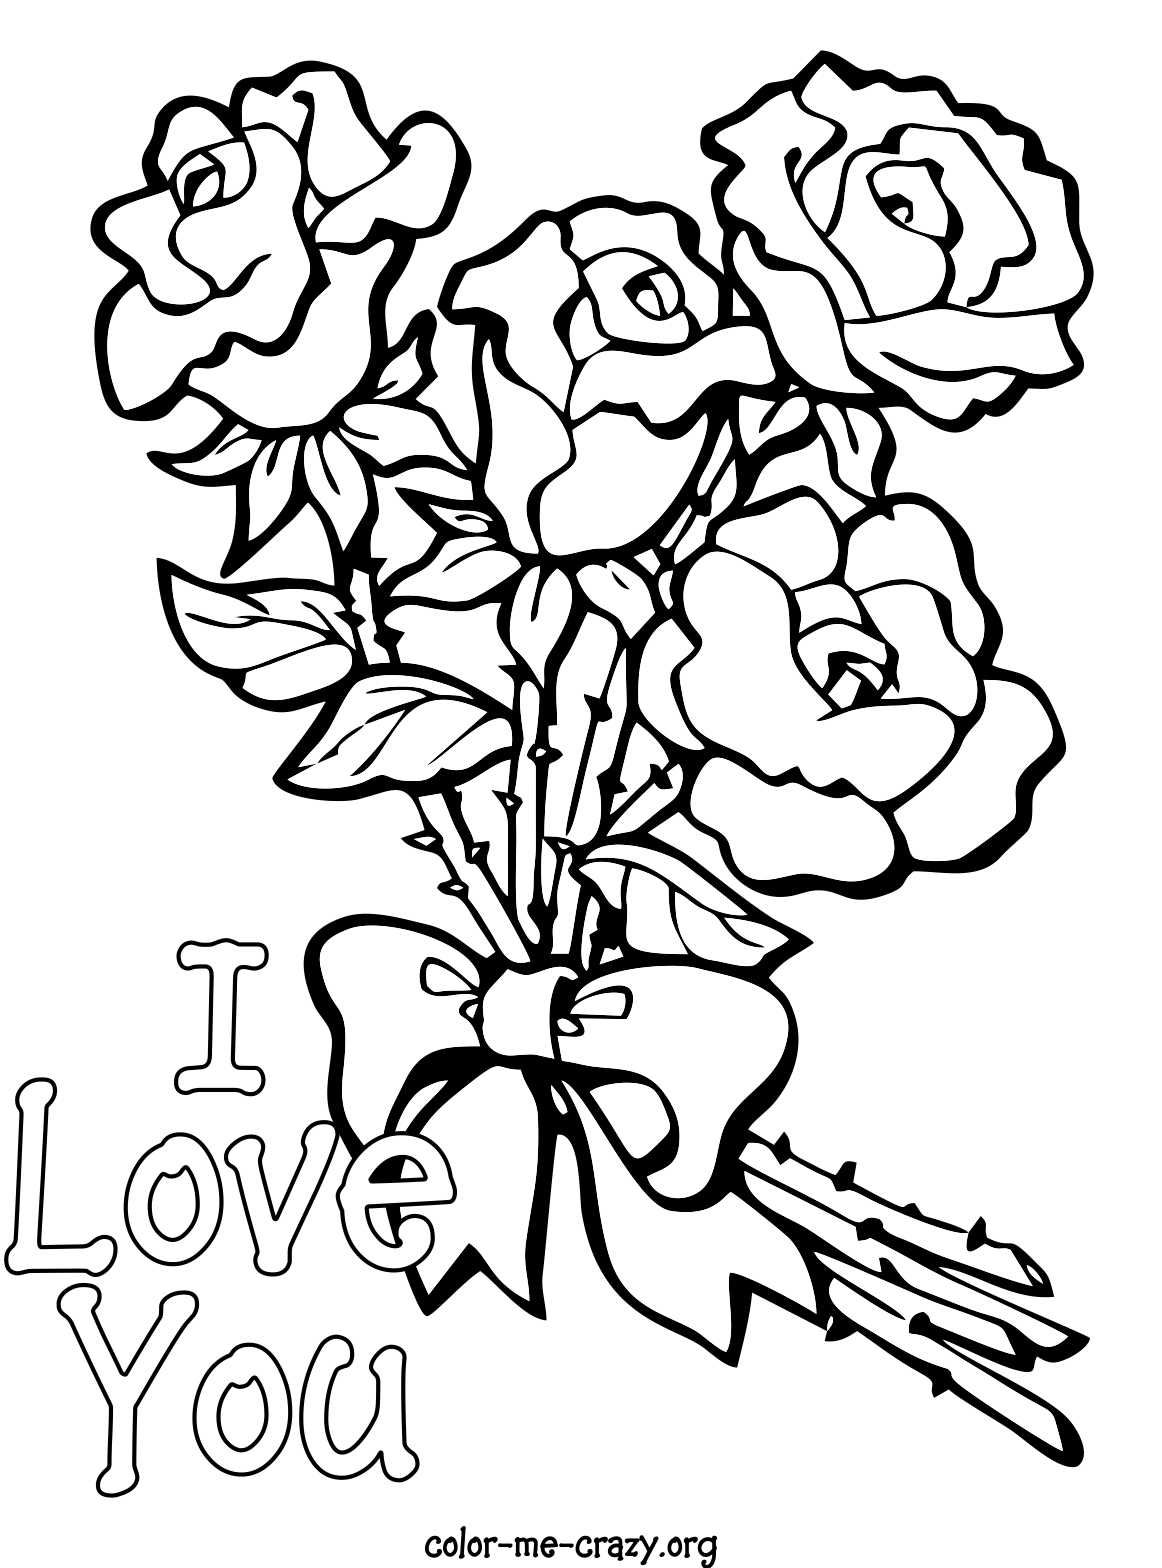 image detail for colormecrazy org valentine coloring pages